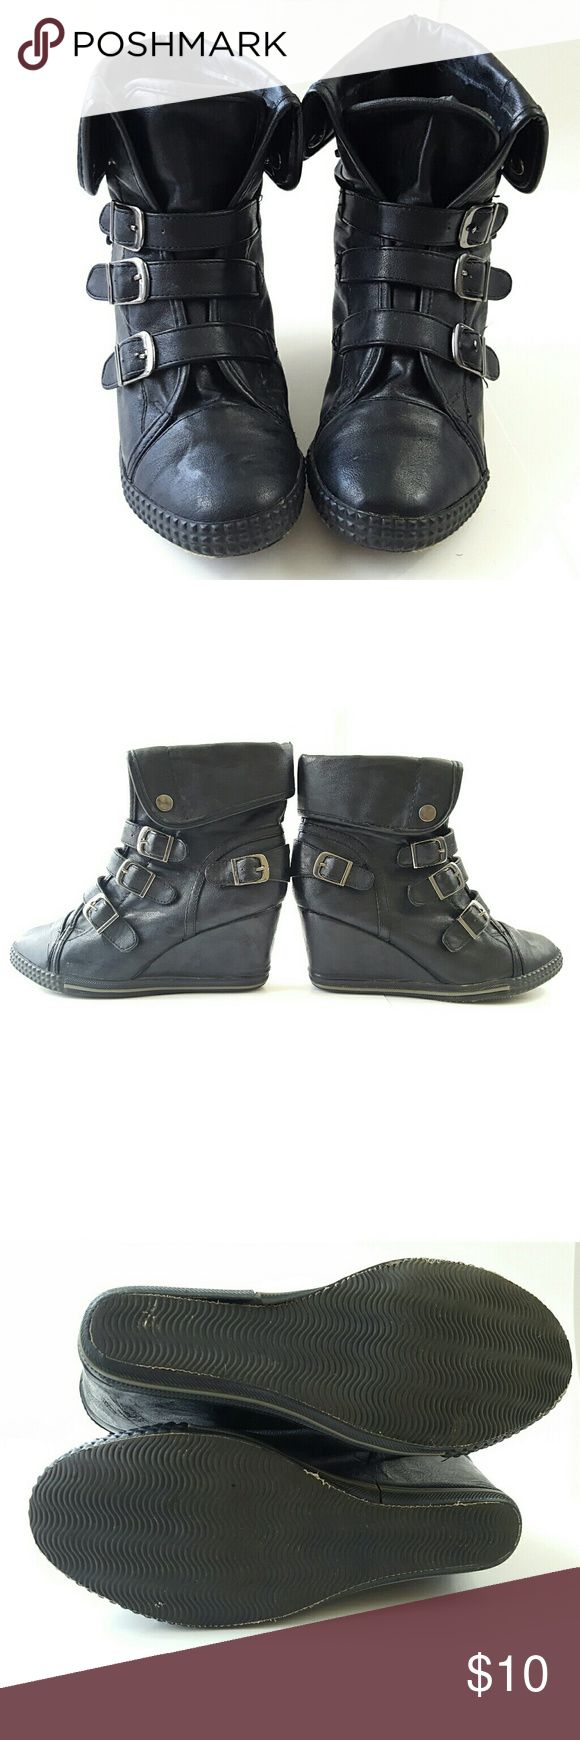 Black Wedge Ankle Boots Bucco, black wedge, ankle boots, buckle straps, all man made material, trim on the bottom coming apart (as pictured), fair condition, size 6 1/2. Bucco Shoes Wedges